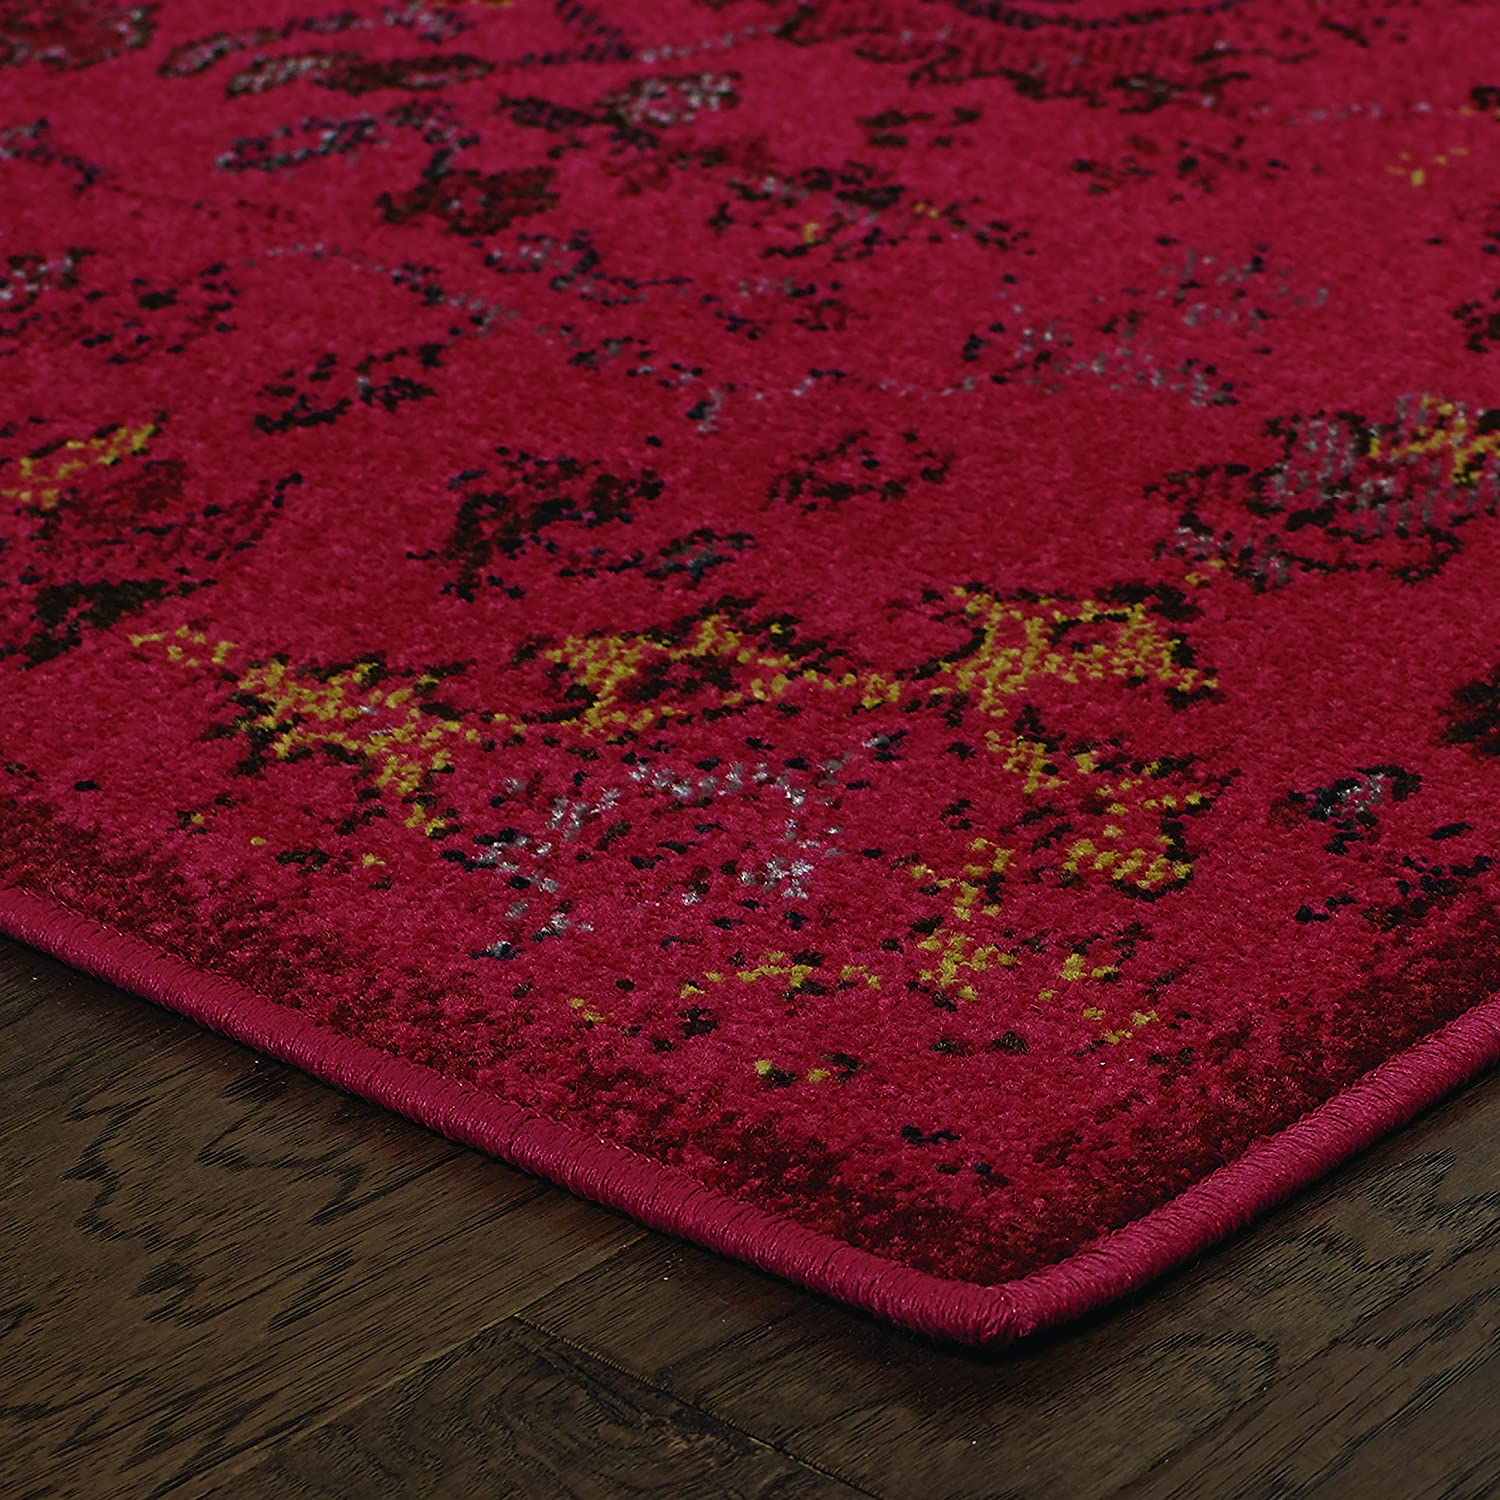 Christopher Knight Home CK-H2963 Reign Vintage Indoor Area Rug 7ft 10in X 10ft 10in Pink,Charcoal